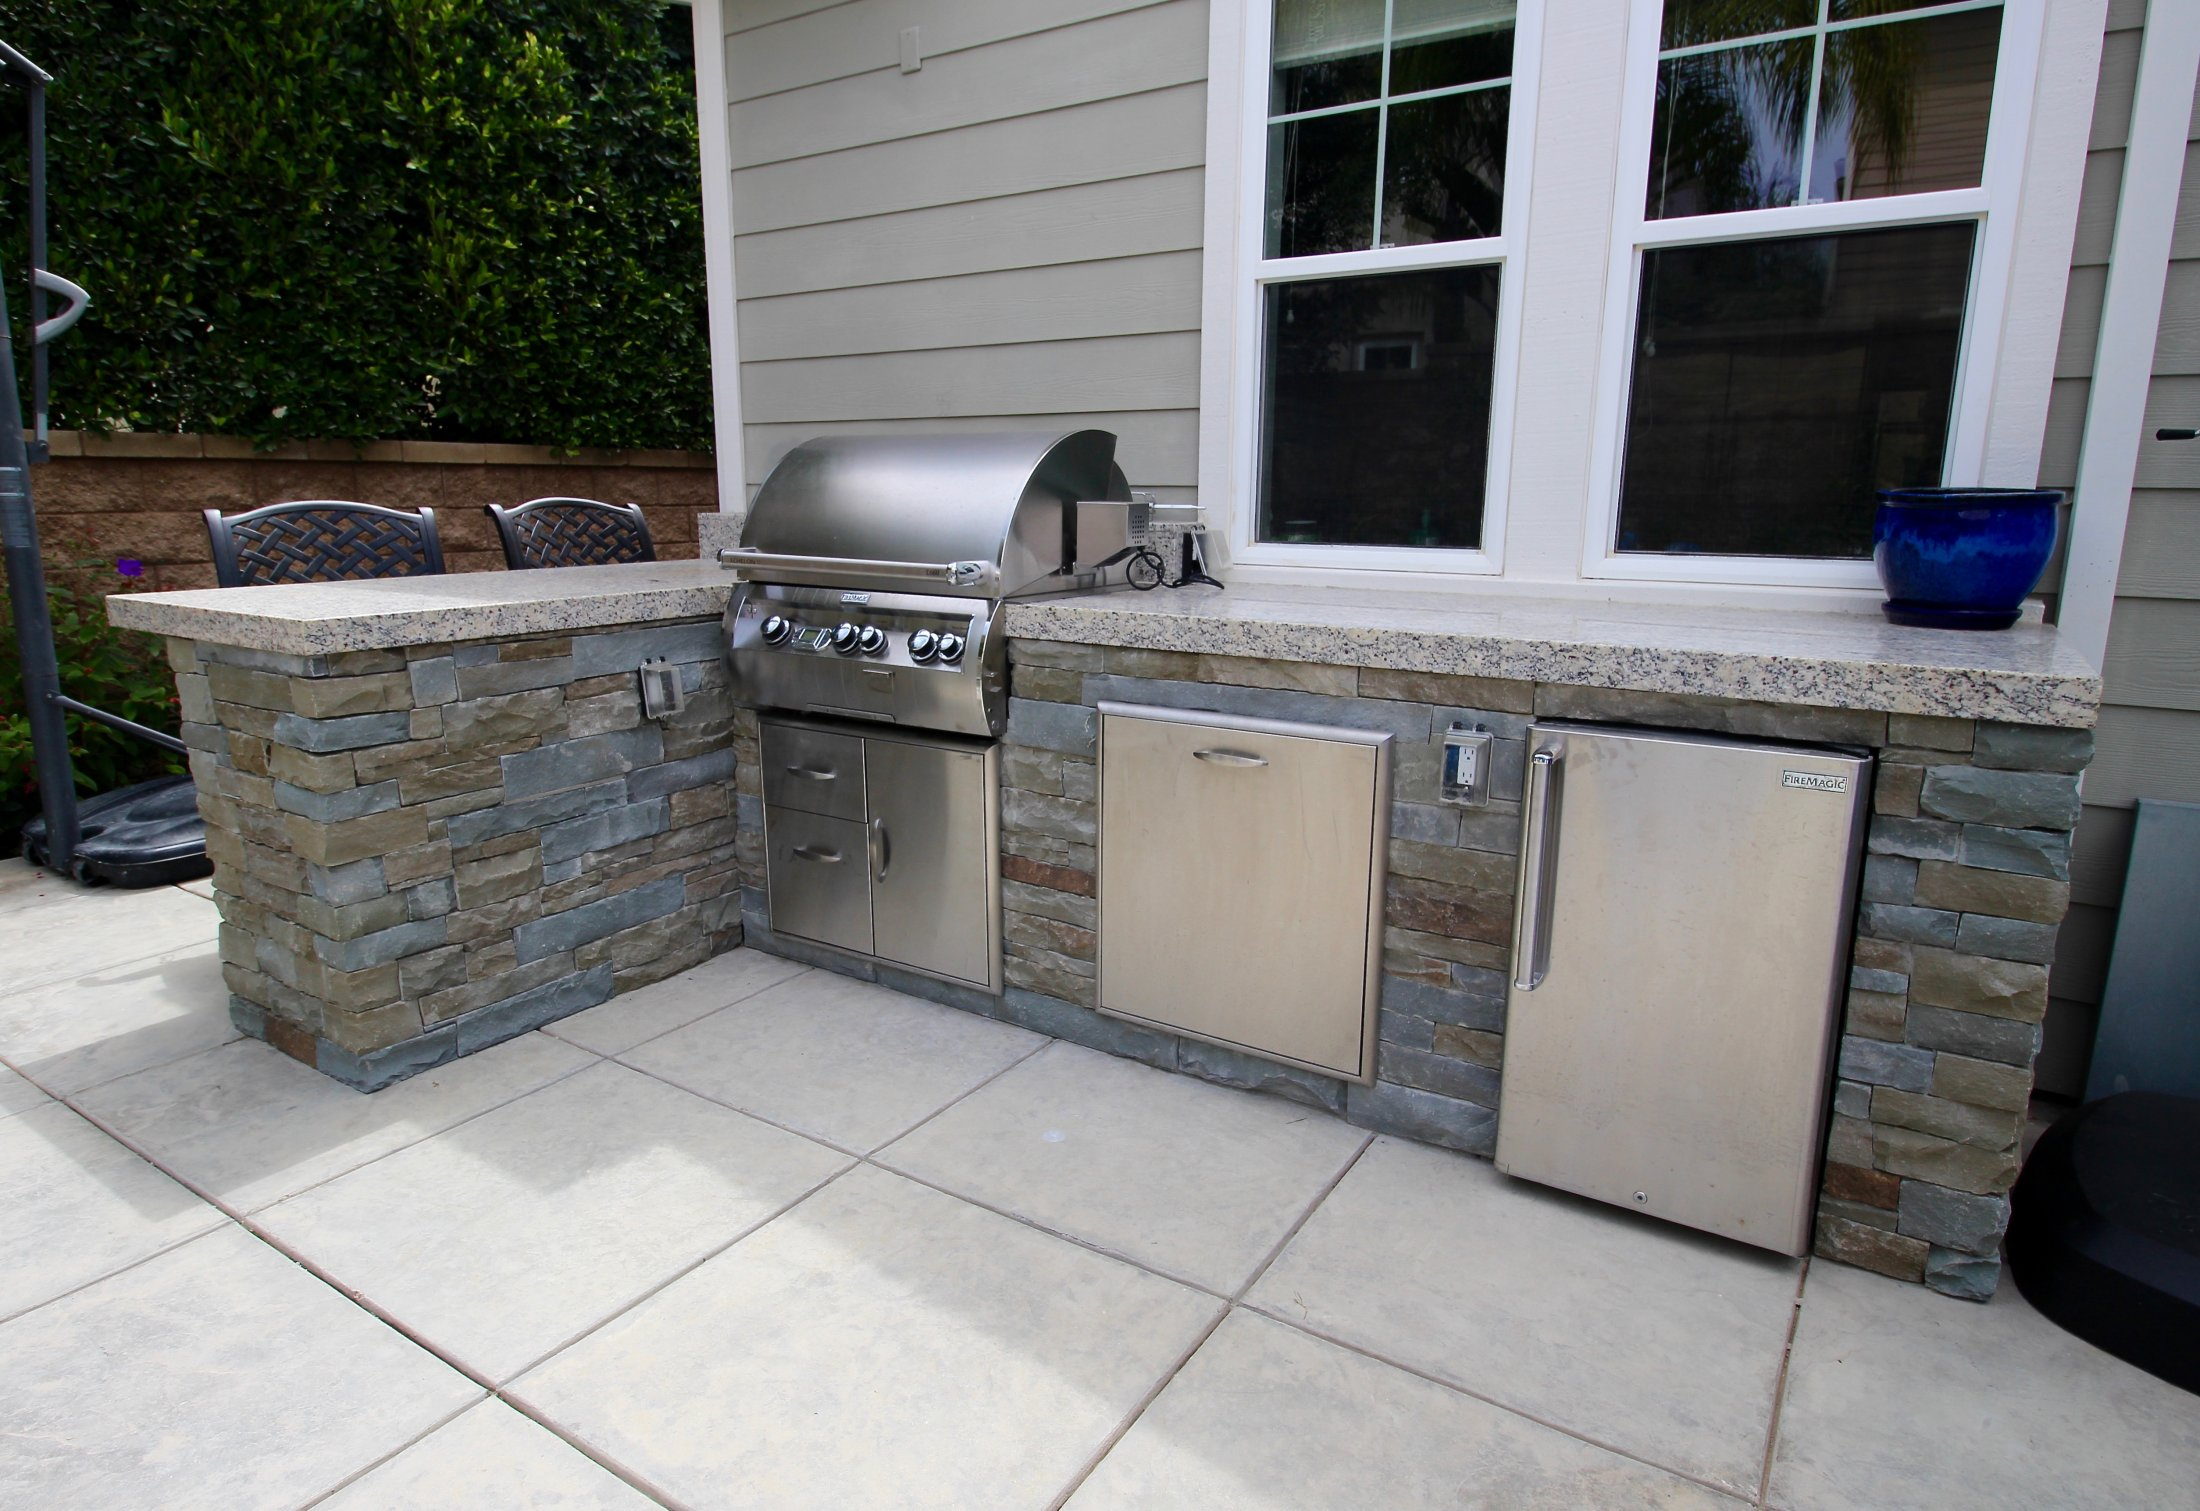 Outdoor Kitchens and BBQ Grills - Horusicky Construction